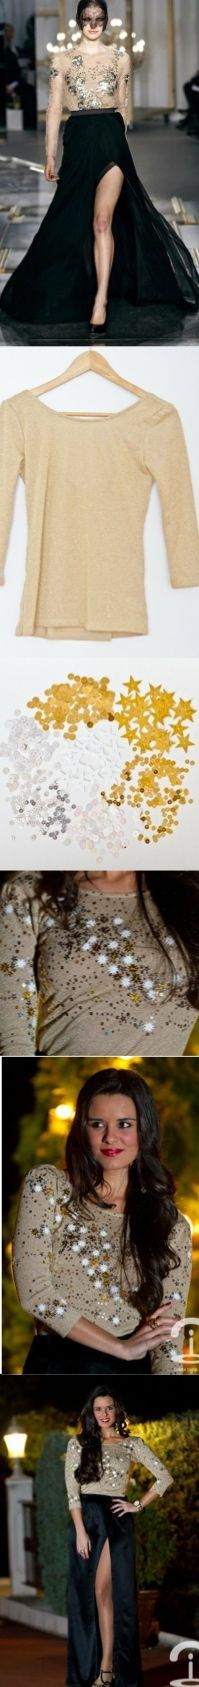 DIY Crimenes de la Moda - Jason Wu inspired top - party look - top de fiesta - gold - dorado - evening outfit